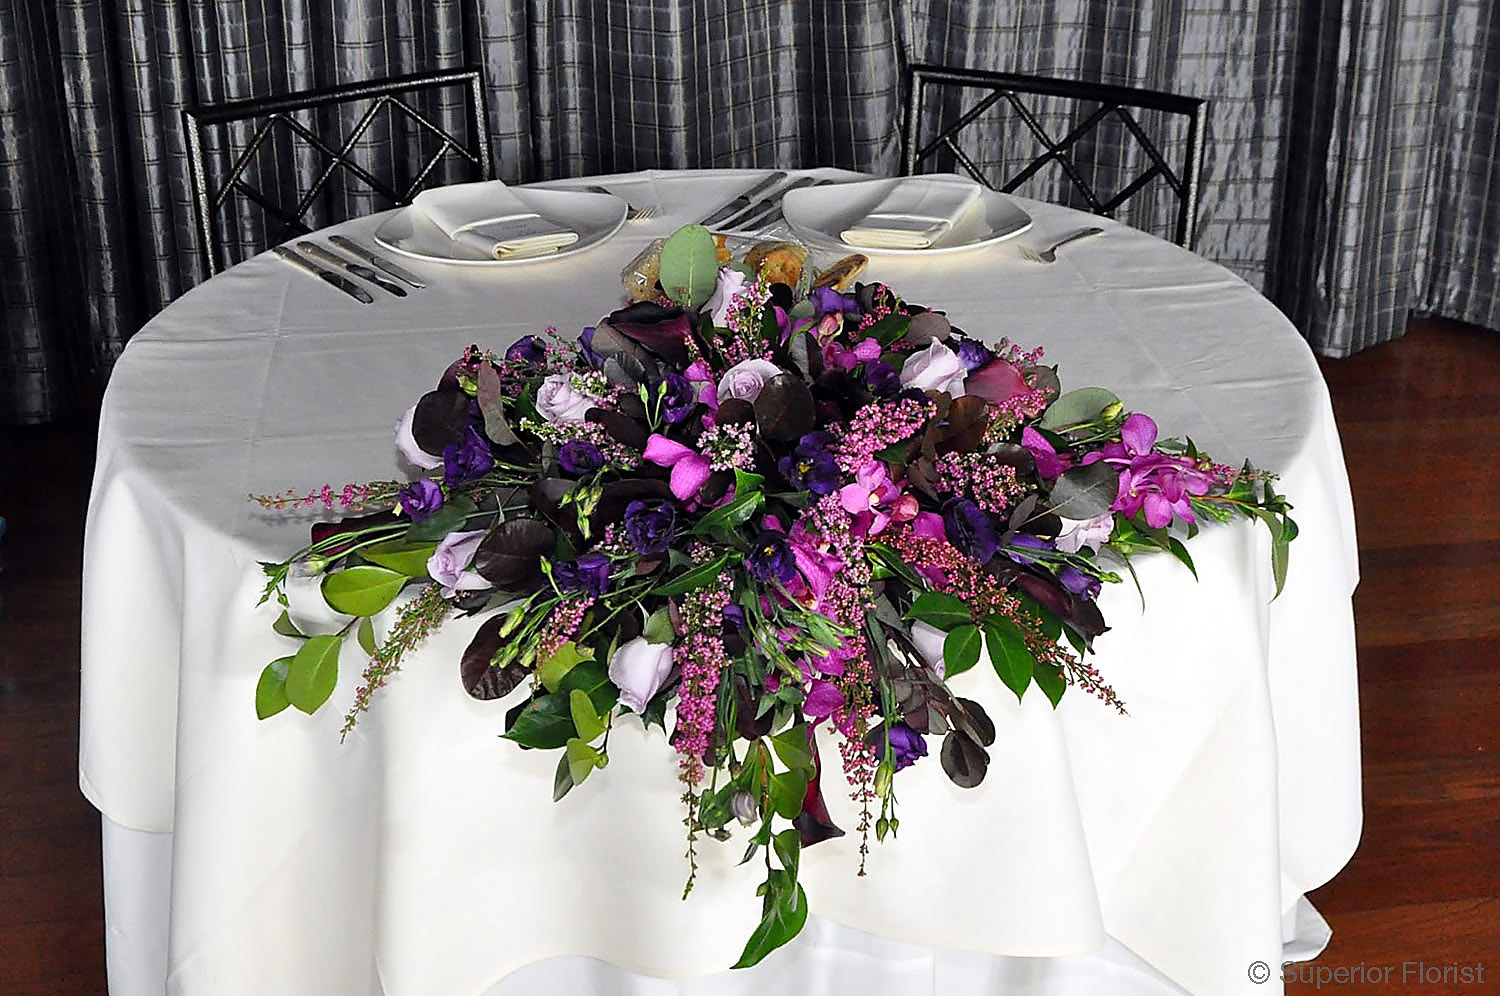 Superior Florist – Sweetheart Tables: Arrangement with shades of pink and lavender, heather, Lisianthus, Callas, Eucalyptus and Dendrobiums.